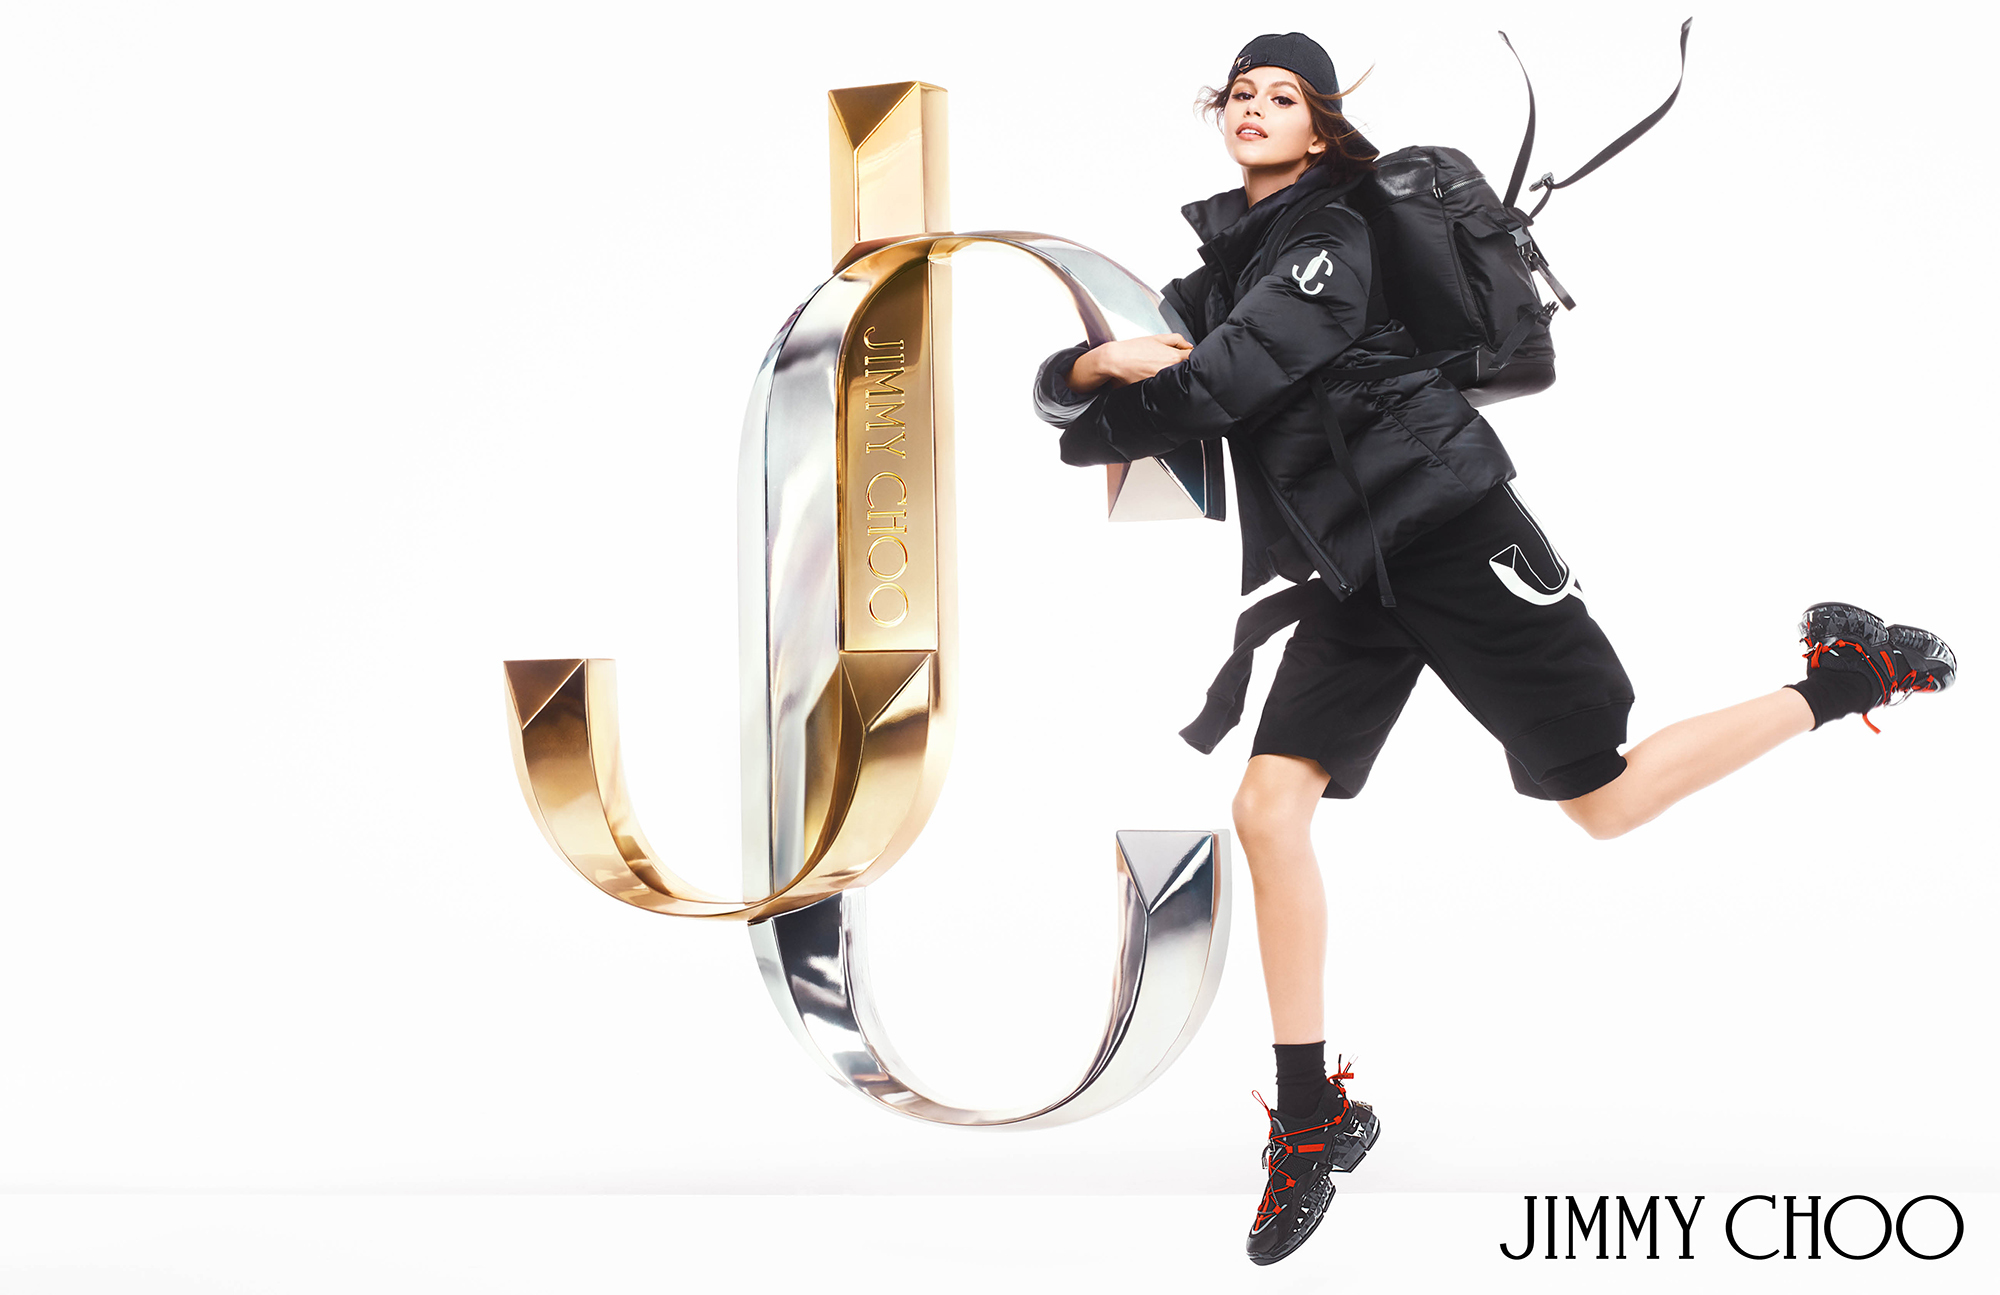 JIMMY CHOO AW19 CAMPAIGN WIXON BACKPACK DIAMOND TRAINERS JC PUFFER